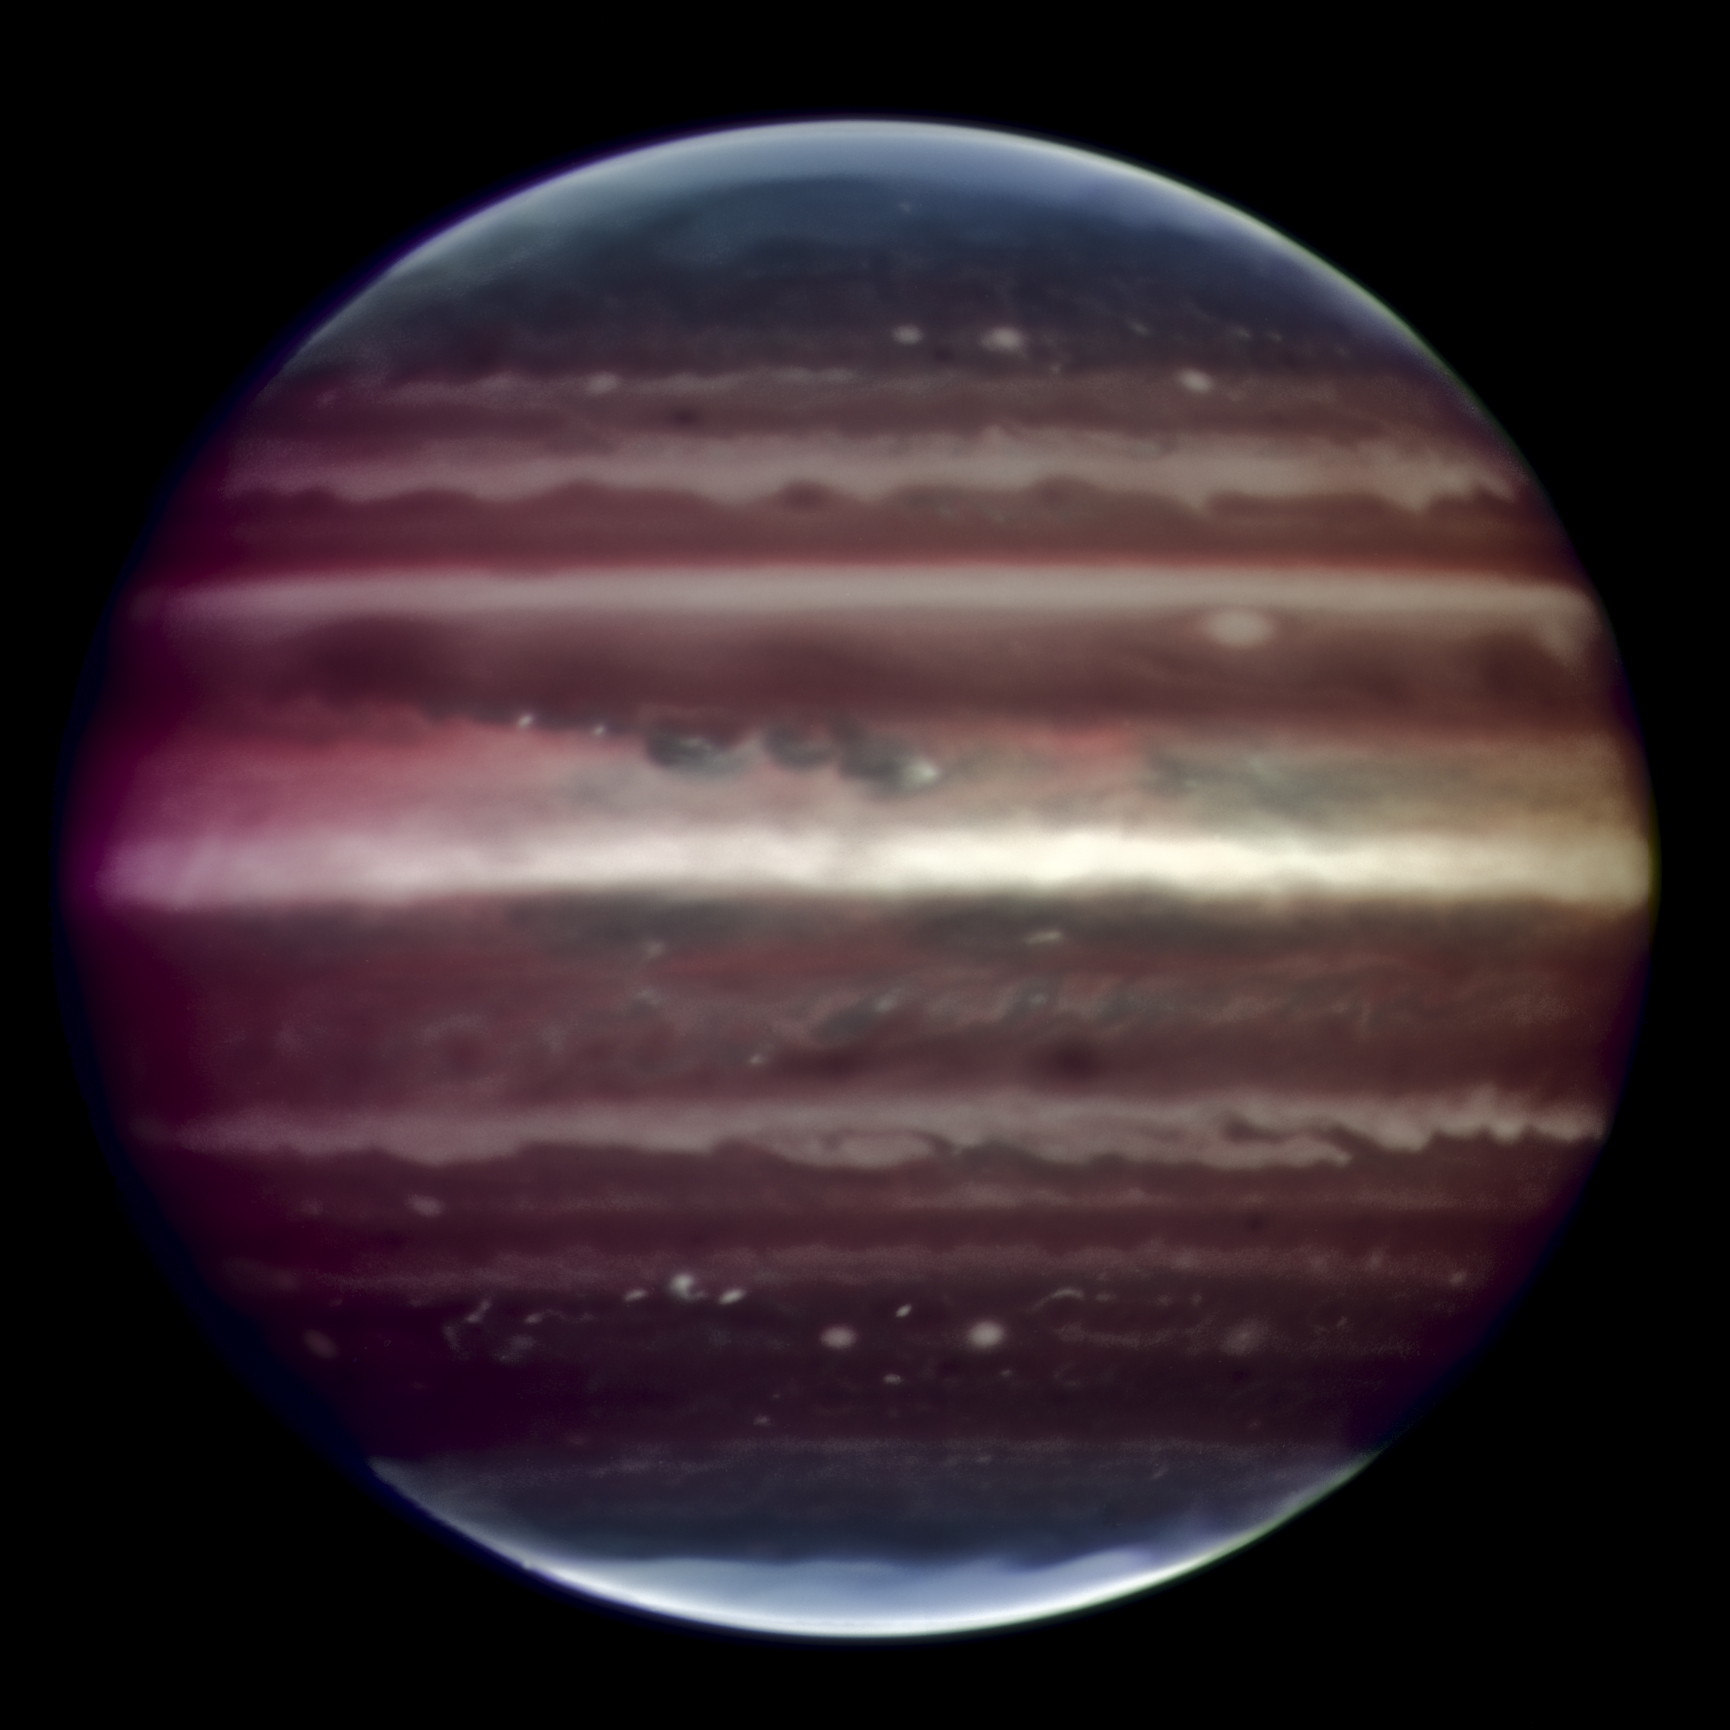 Jupiter in infrared light